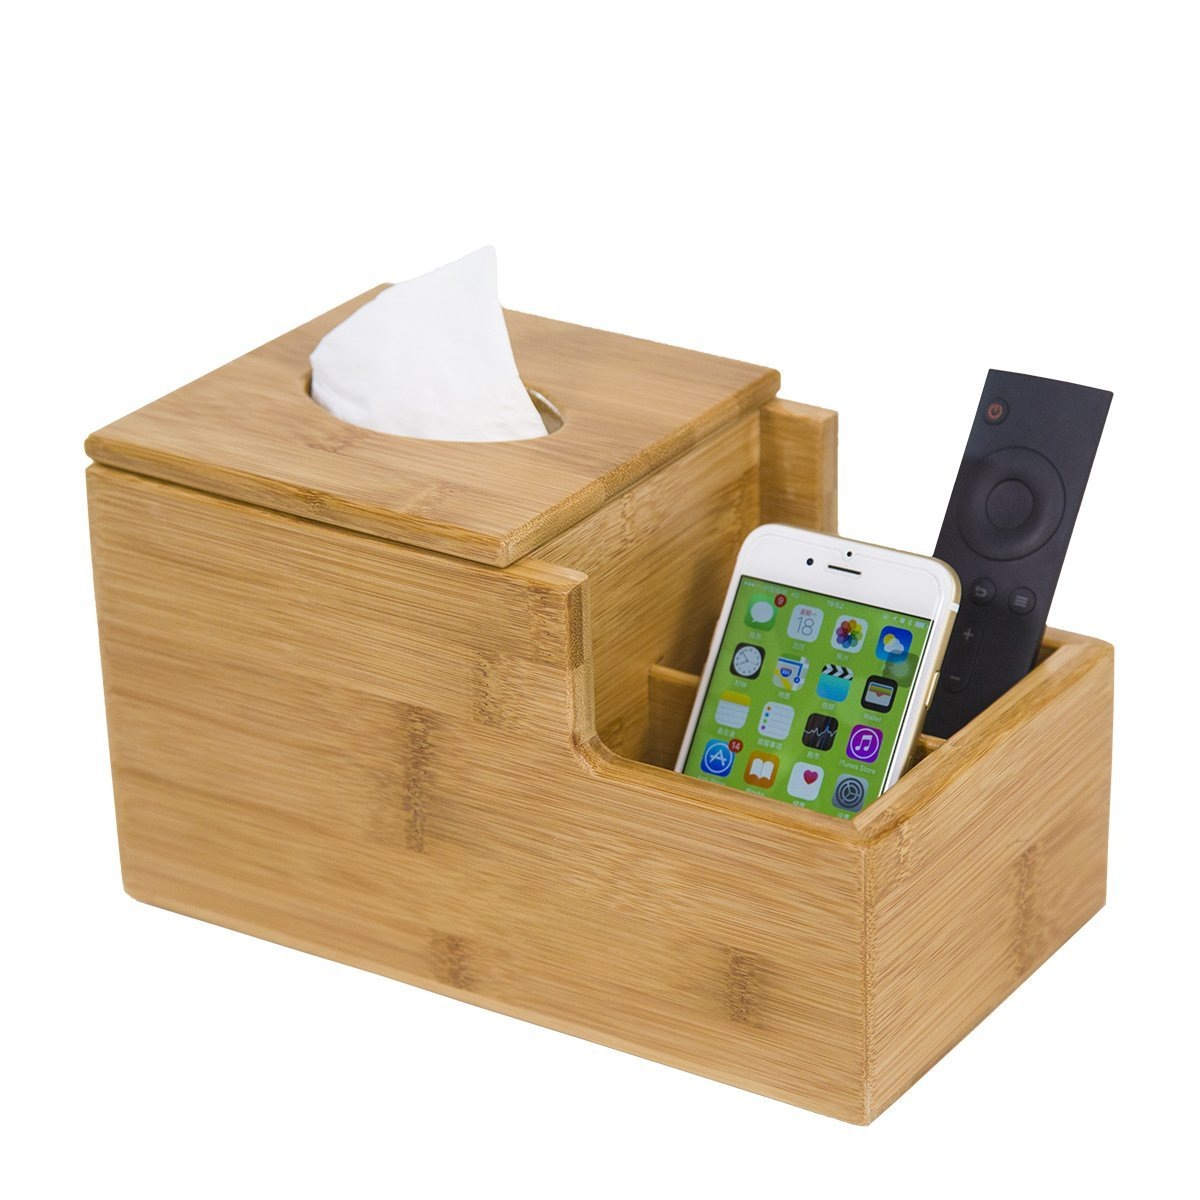 GOBAM Tissue Box Cover Square Desktop Organizer, Decorative Box for Bathroom, Home, Hotel or Office, Natural Bamboo